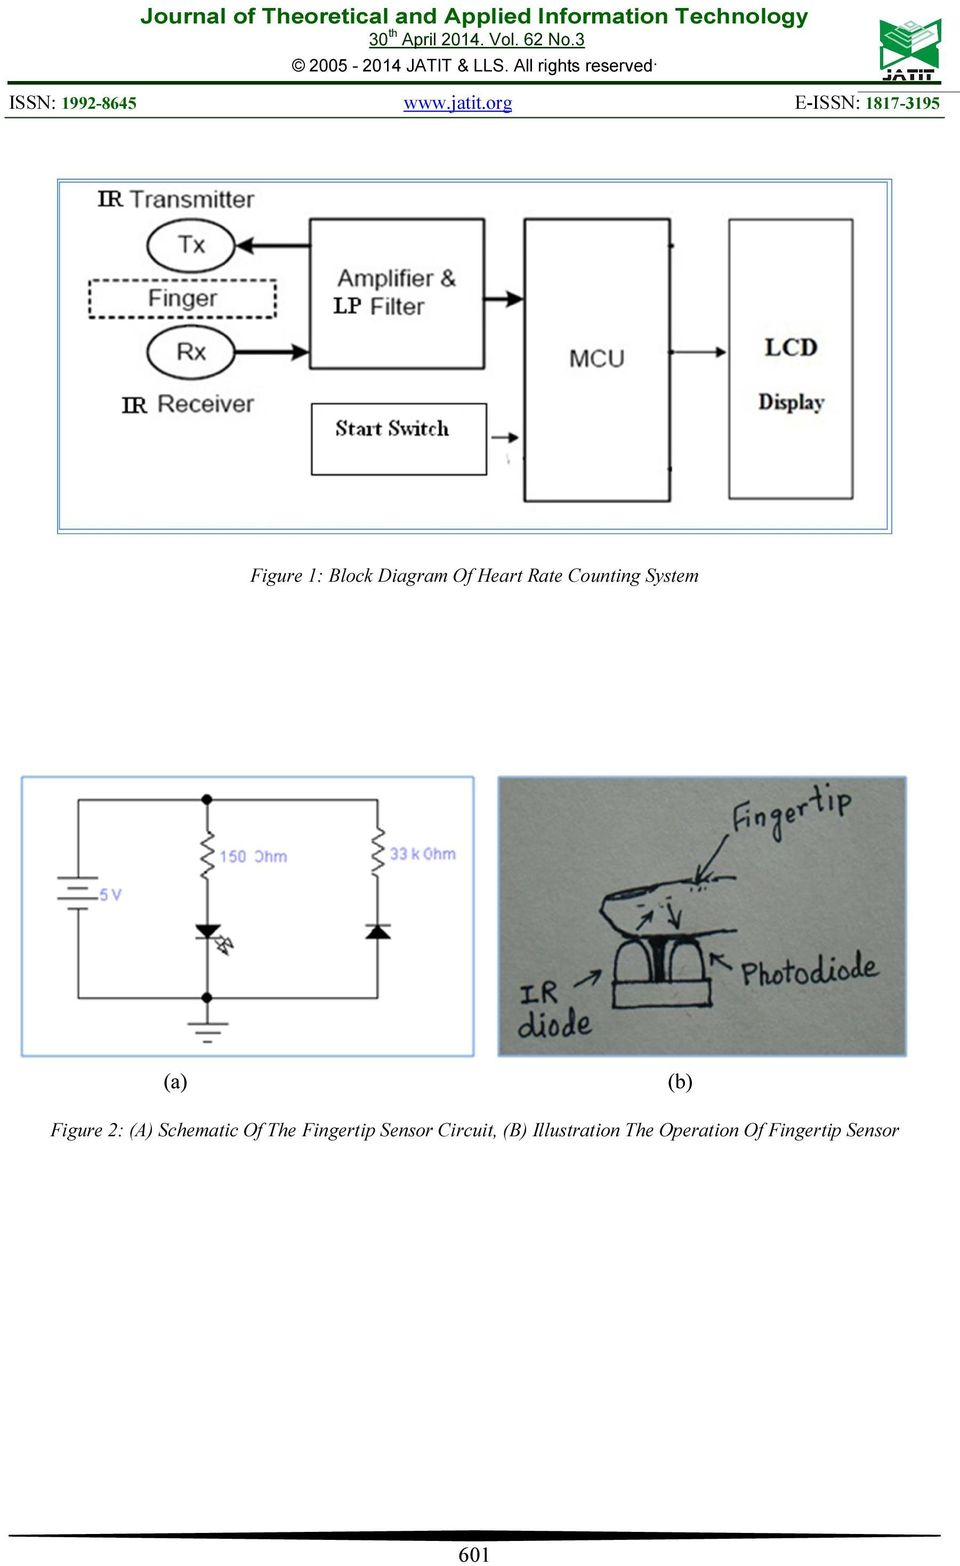 A Microcontroller Based Automatic Heart Rate Counting System From Ac Fan Speed Control Using Android Mobile Microtronics Technologies Schematic Of The Fingertip Sensor Circuit